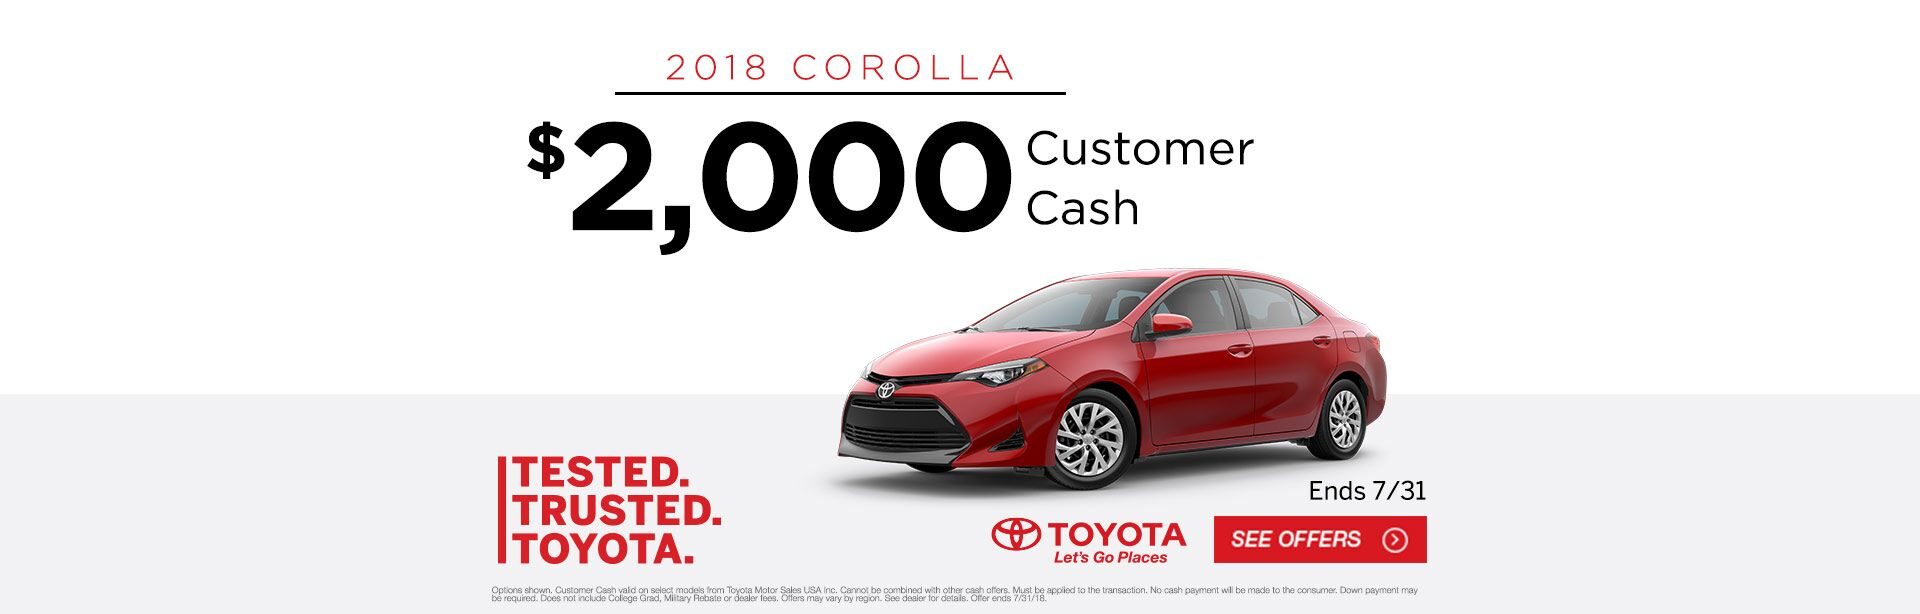 Corolla Customer Cash